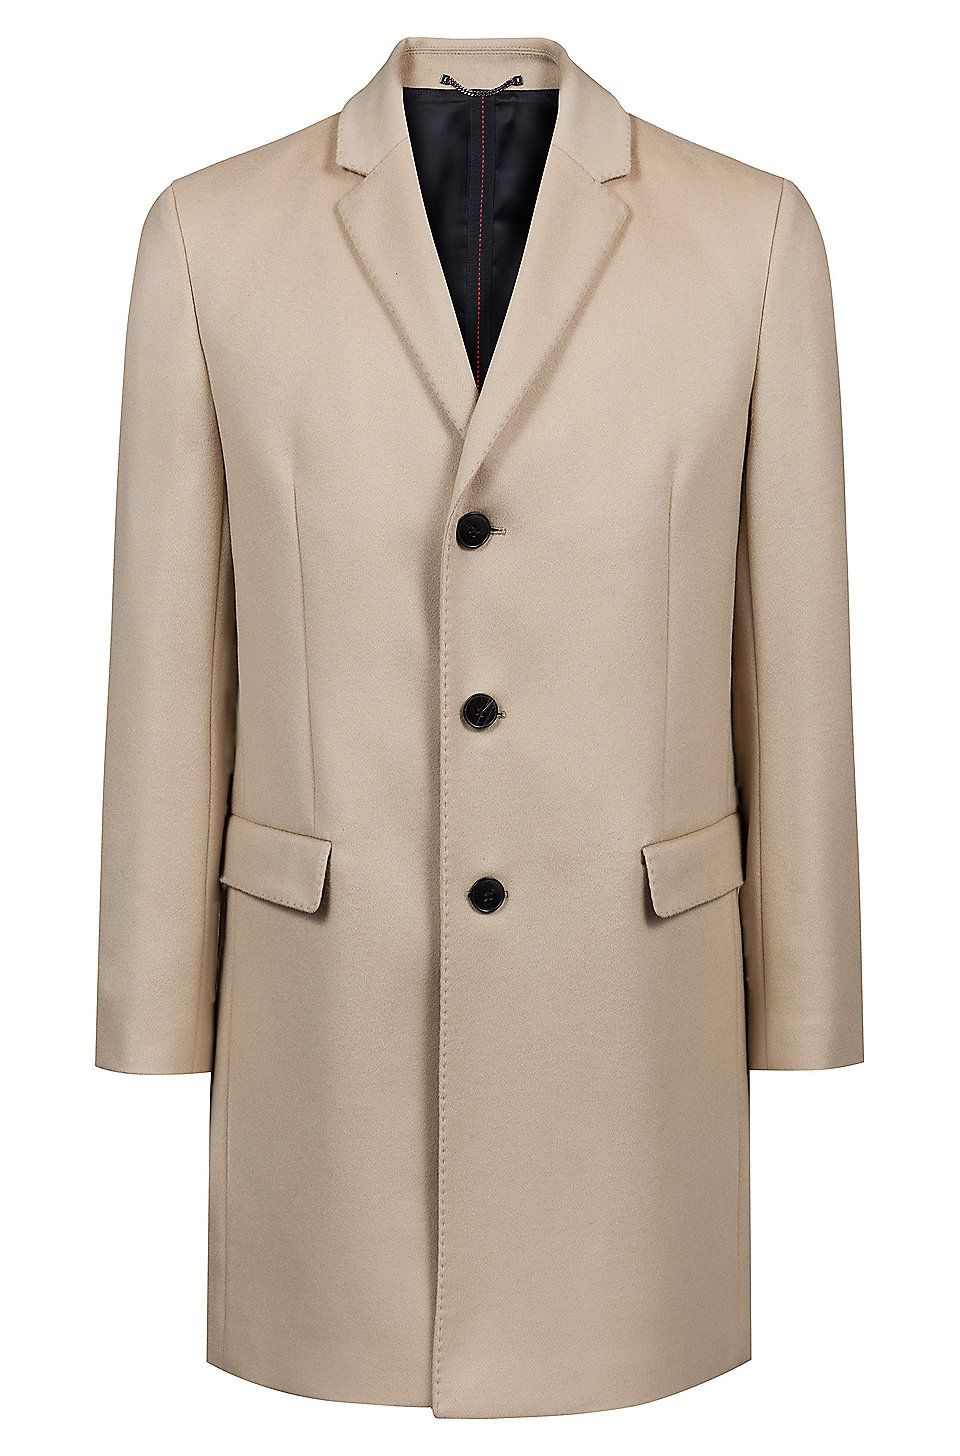 4df6b78ceacc HUGO BOSS Slim-fit coat in a wool-cashmere blend - Beige Casual Coats from  HUGO for Men in the official HUGO BOSS Online Store free shipping